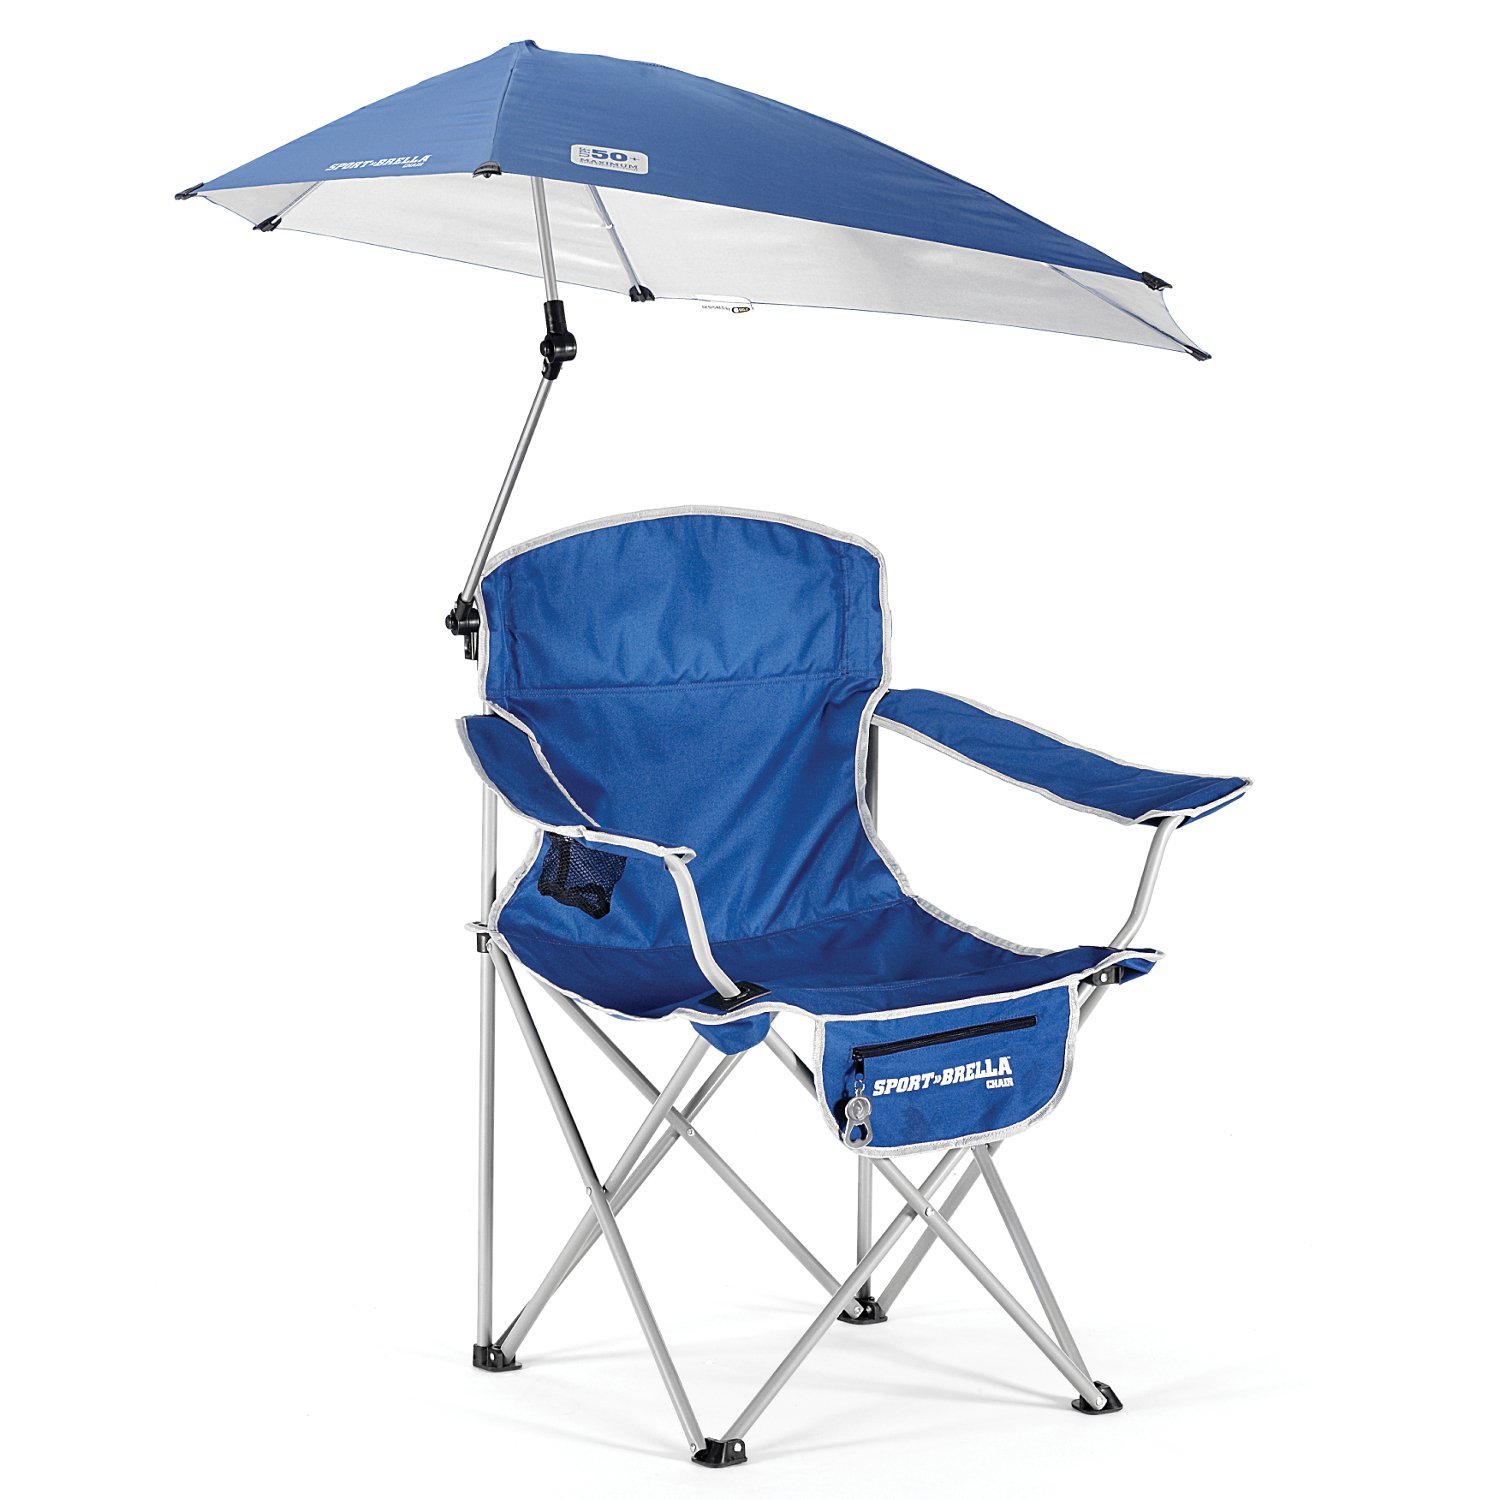 Sport Brella Umbrella Chair 360 Degree Sun Protection Chair